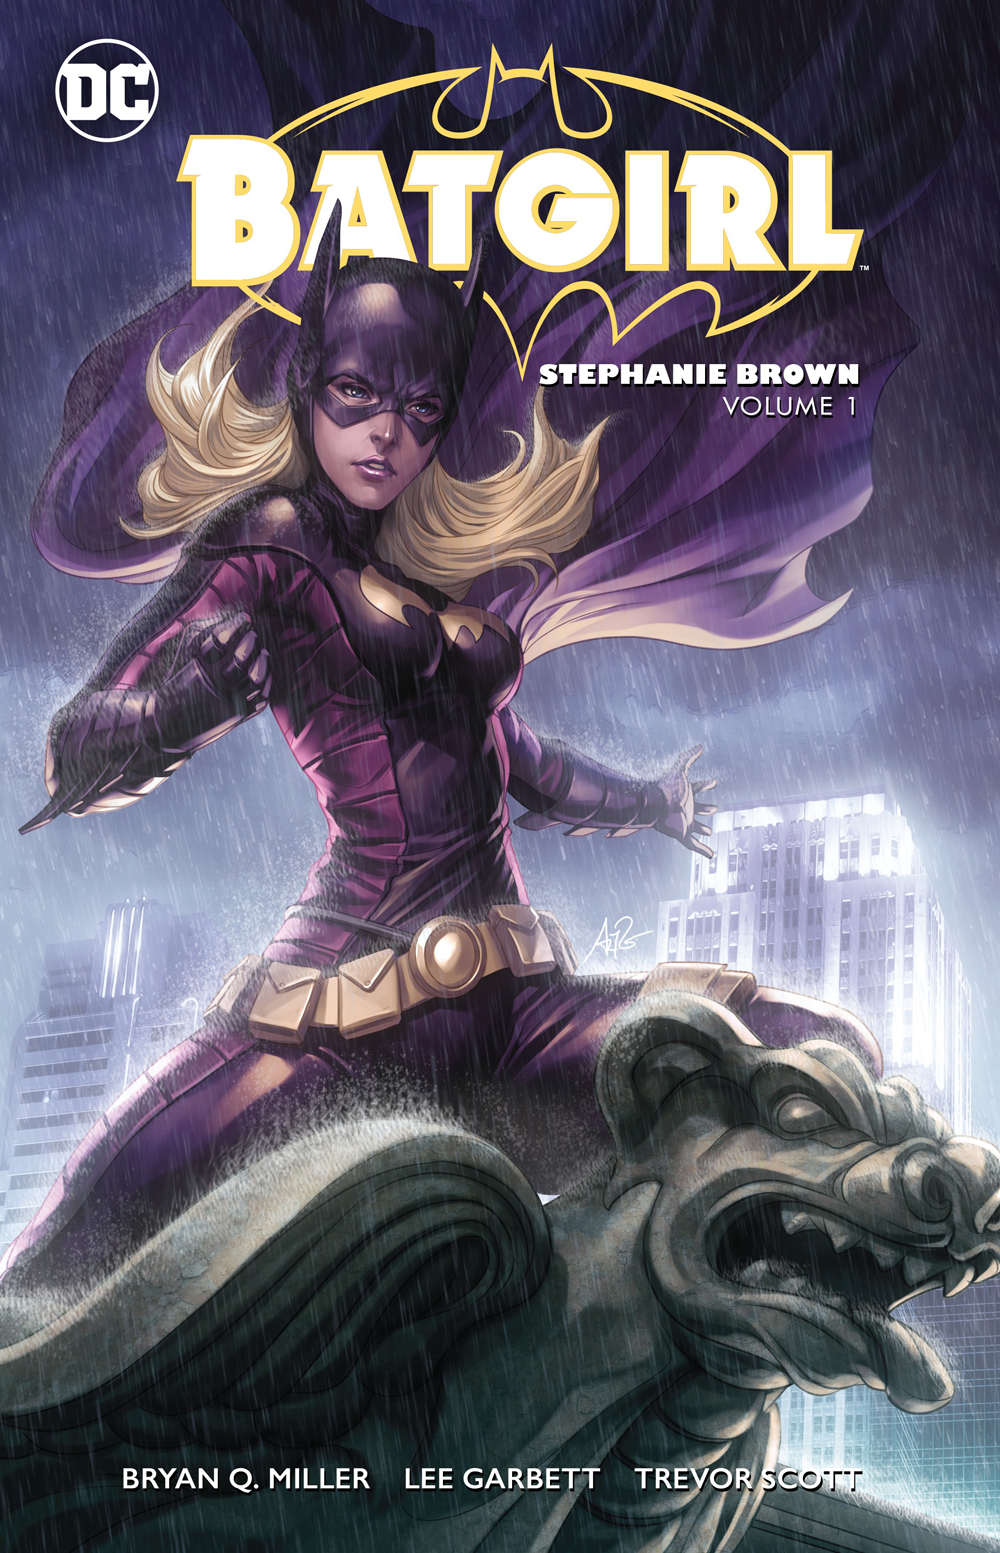 BATGIRL STEPHANIE BROWN TP VOL 01 (2009 #1-12)